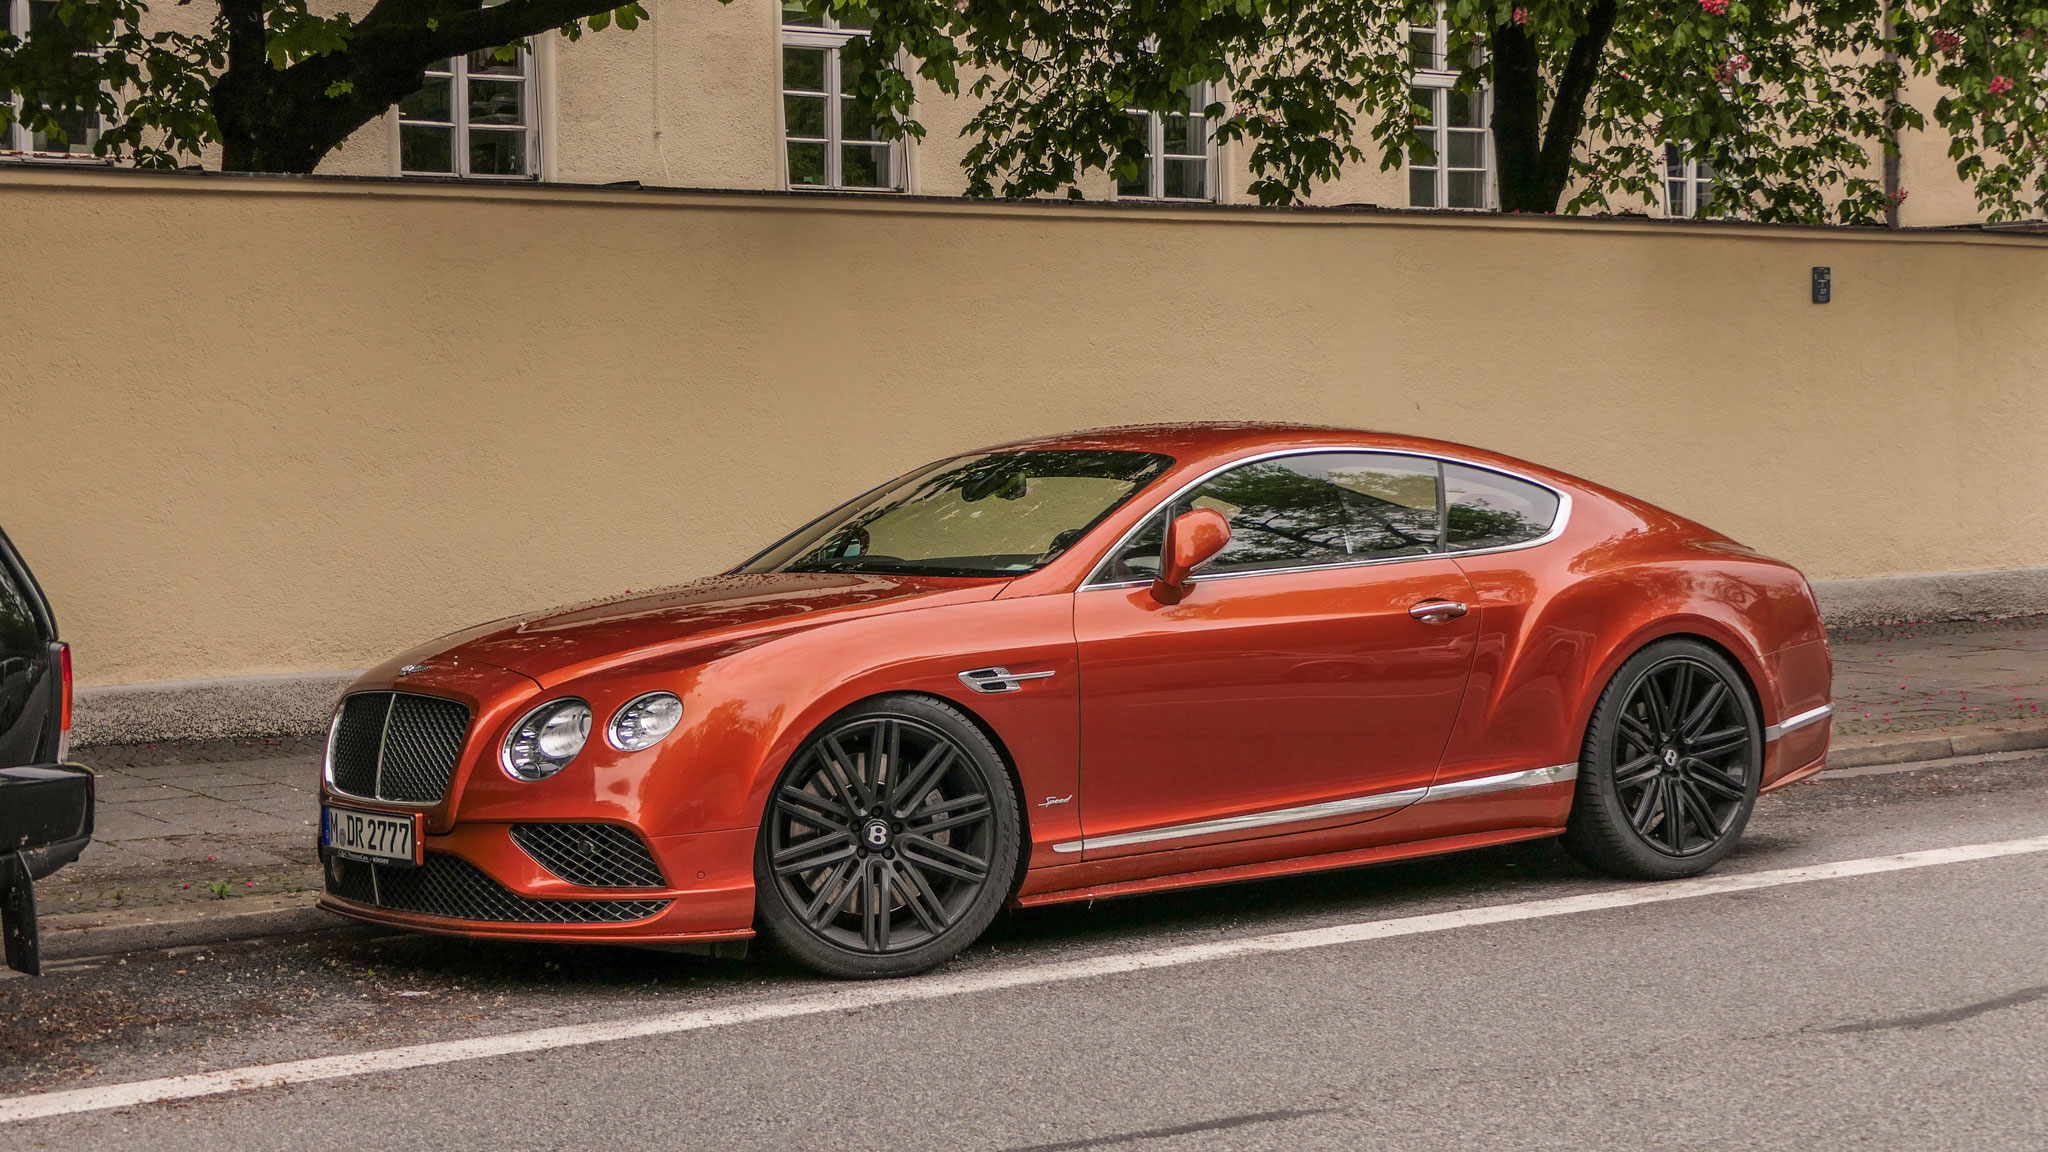 Bentley Continental GT Speed - M-DR-2777